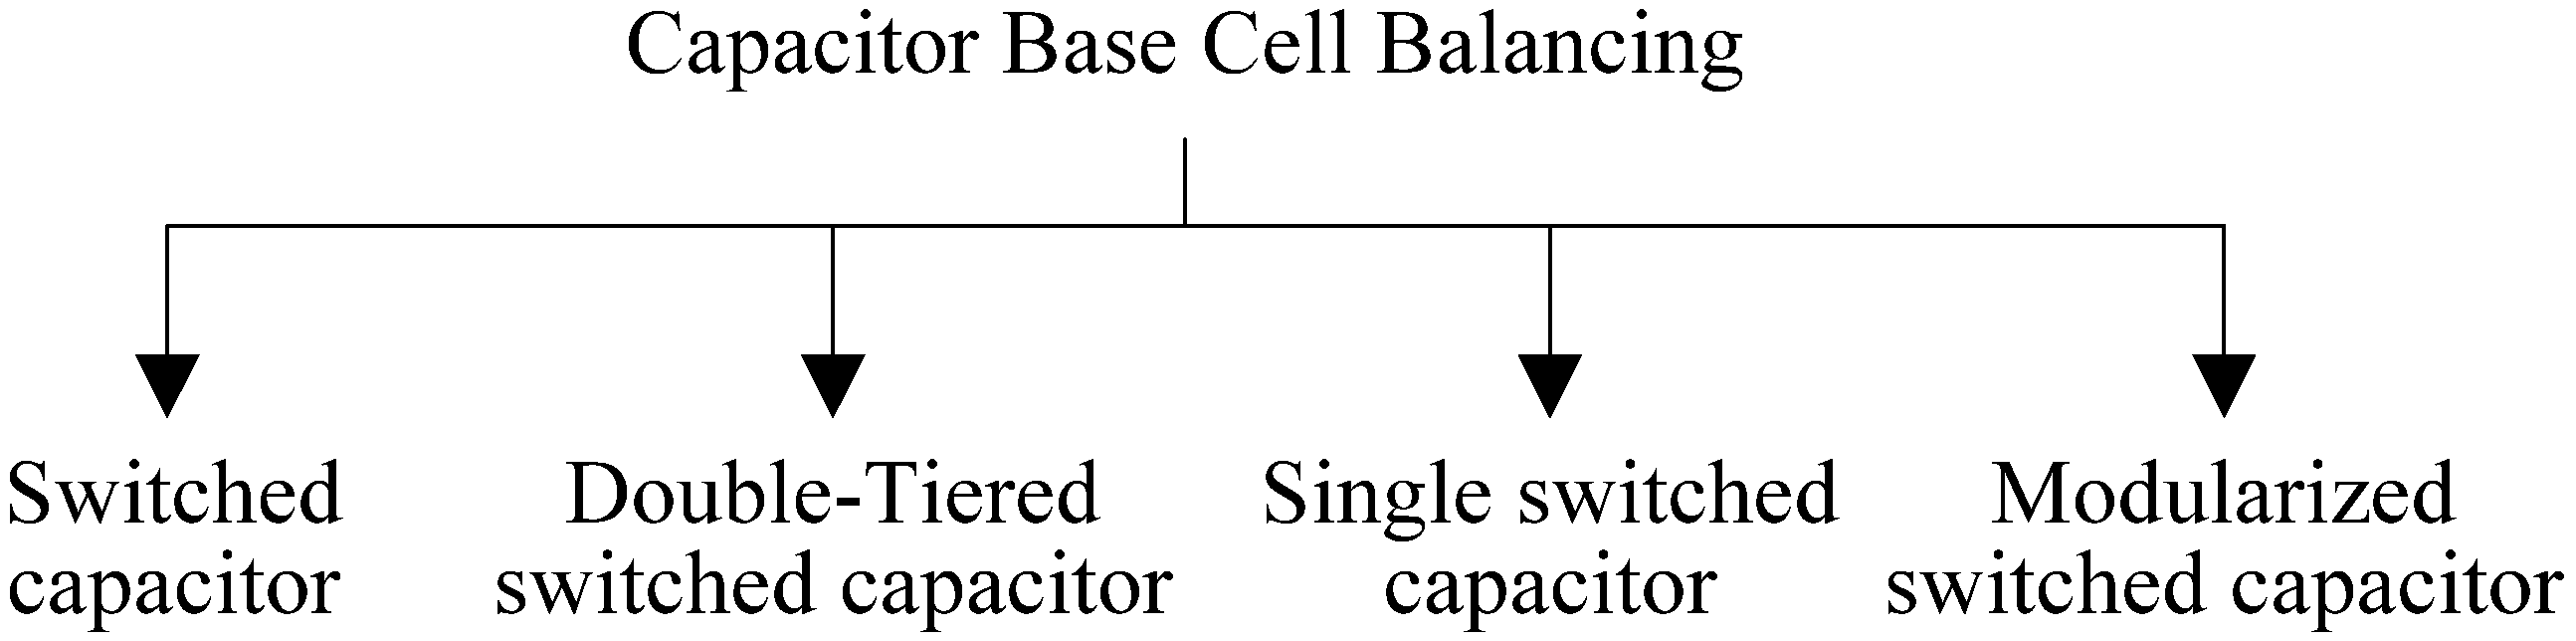 Energies Free Full Text Single Switched Capacitor Battery Shows A Circuit With C Connected In Series Resistor 06 02149 G001